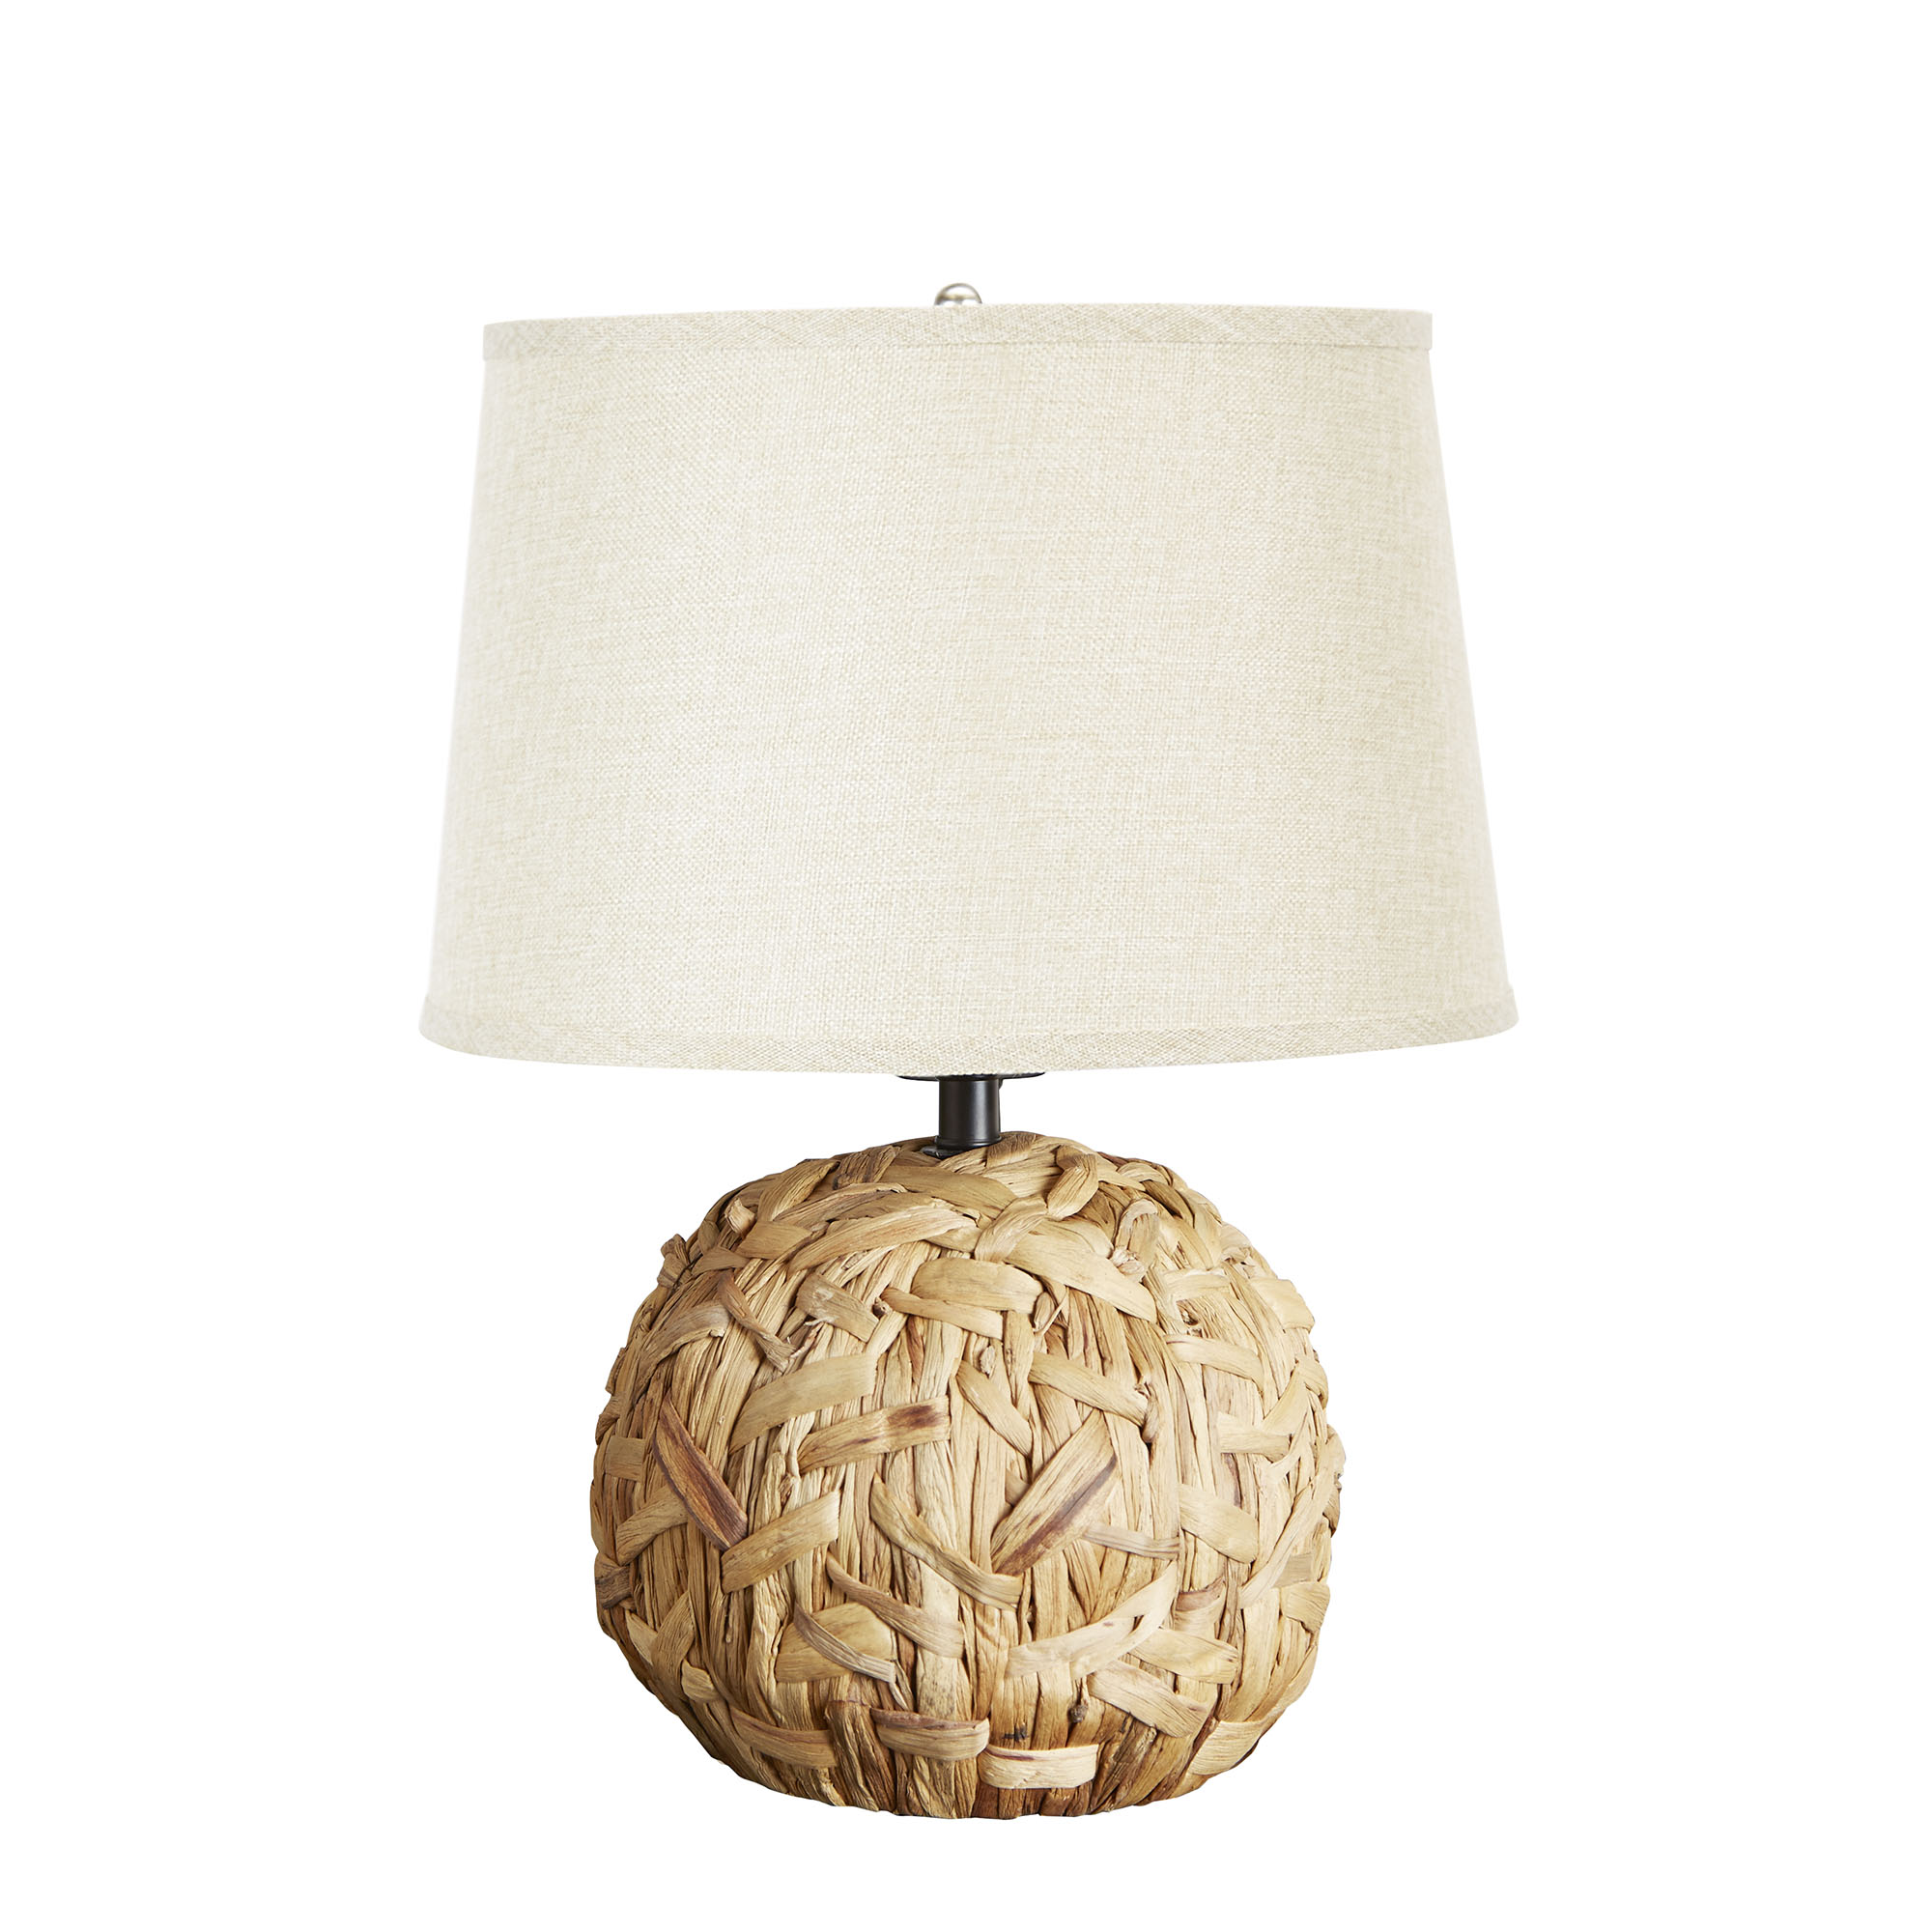 Better homes and gardens natural rattan table lamp base walmart geotapseo Gallery